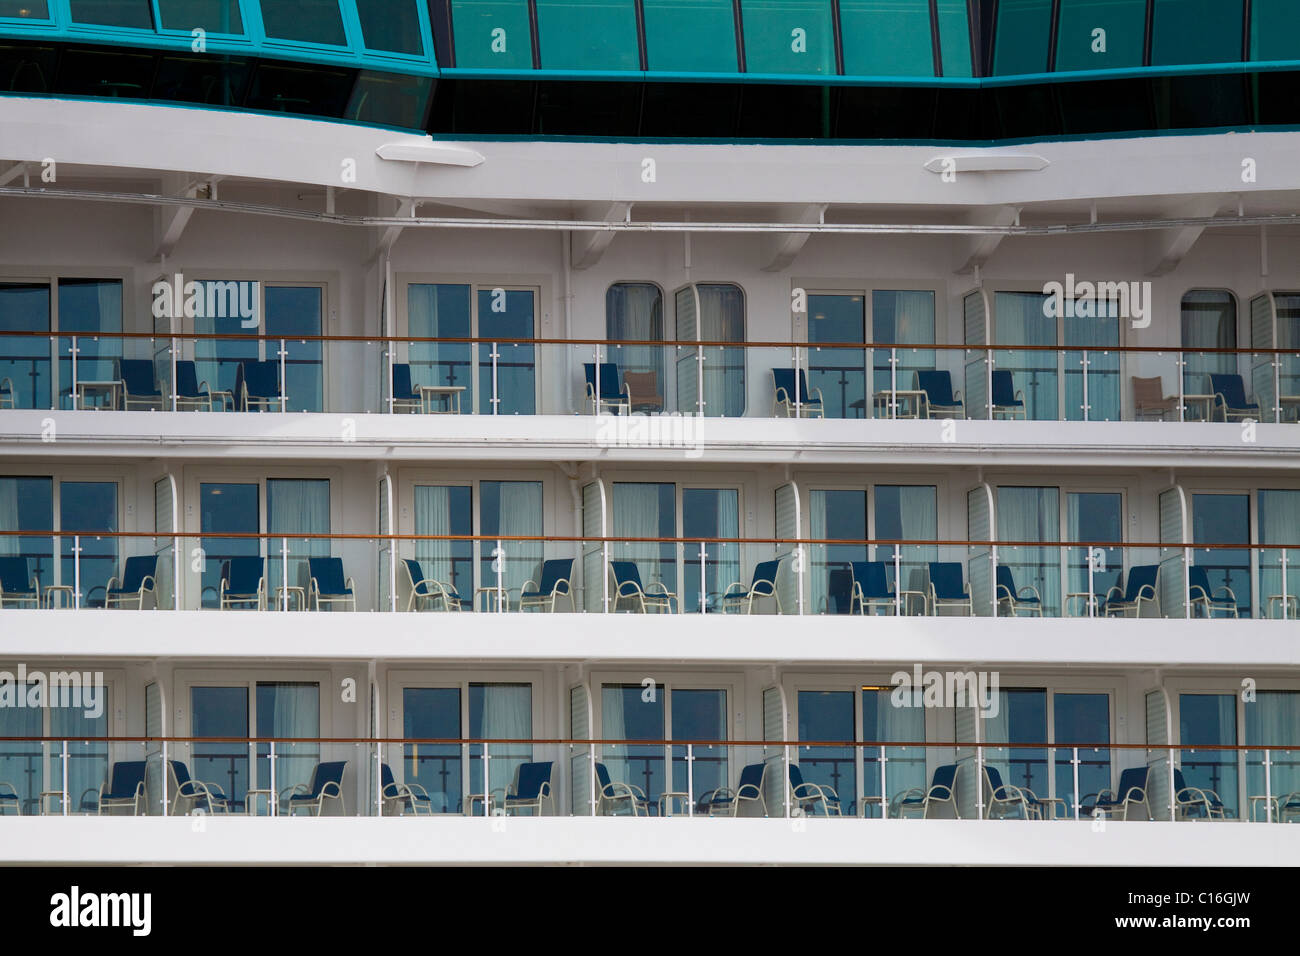 Many deck chairs on rows of balconies outside state rooms of luxury cruise ship - Stock Image